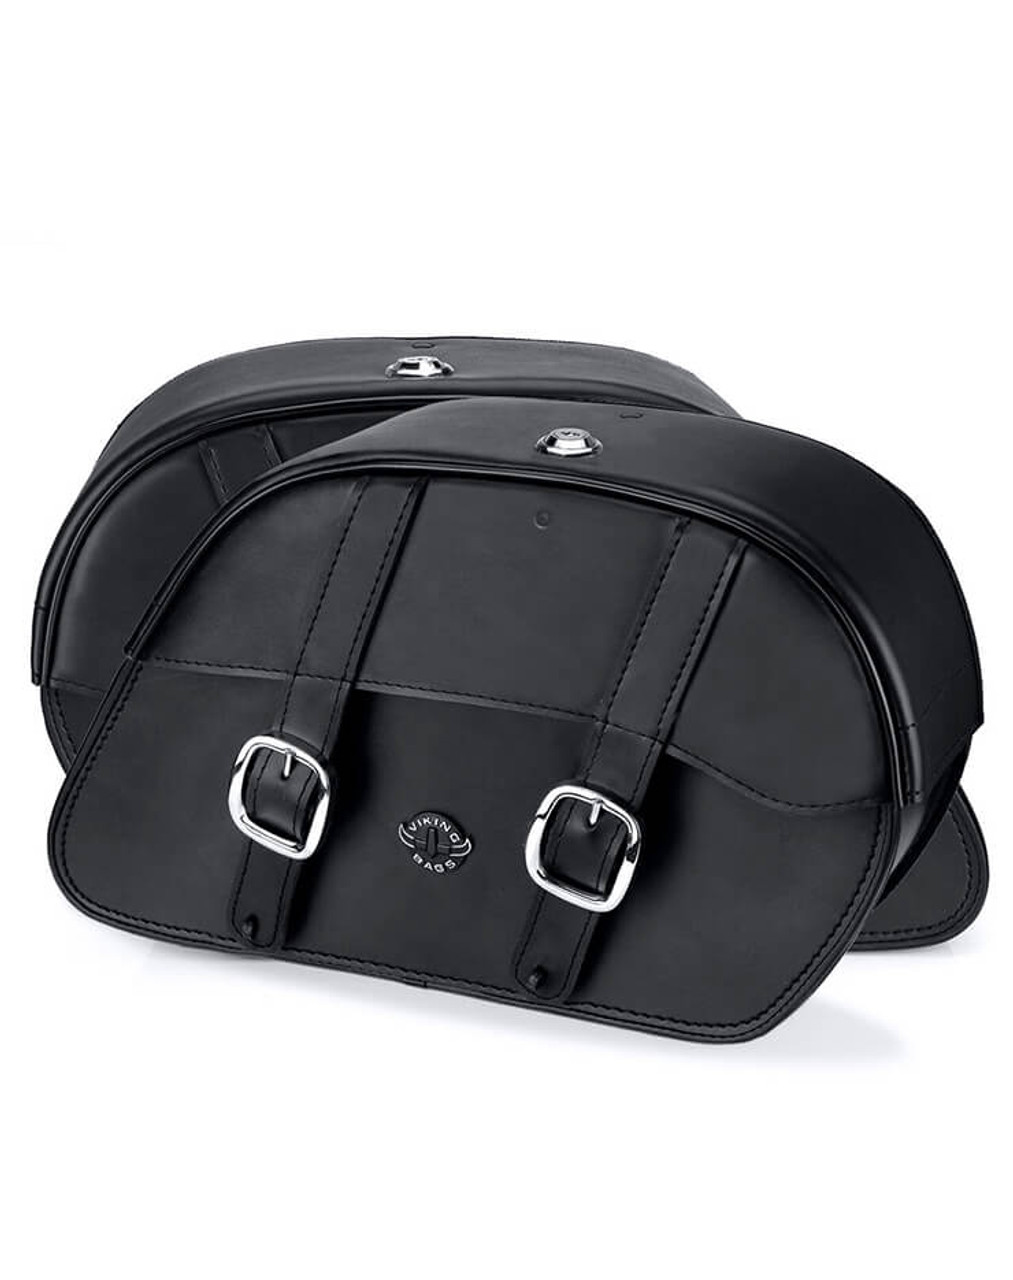 VikingBags Skarner Large Double Strap Indian Scout Sixty Leather Motorcycle Saddlebags Both Bags View